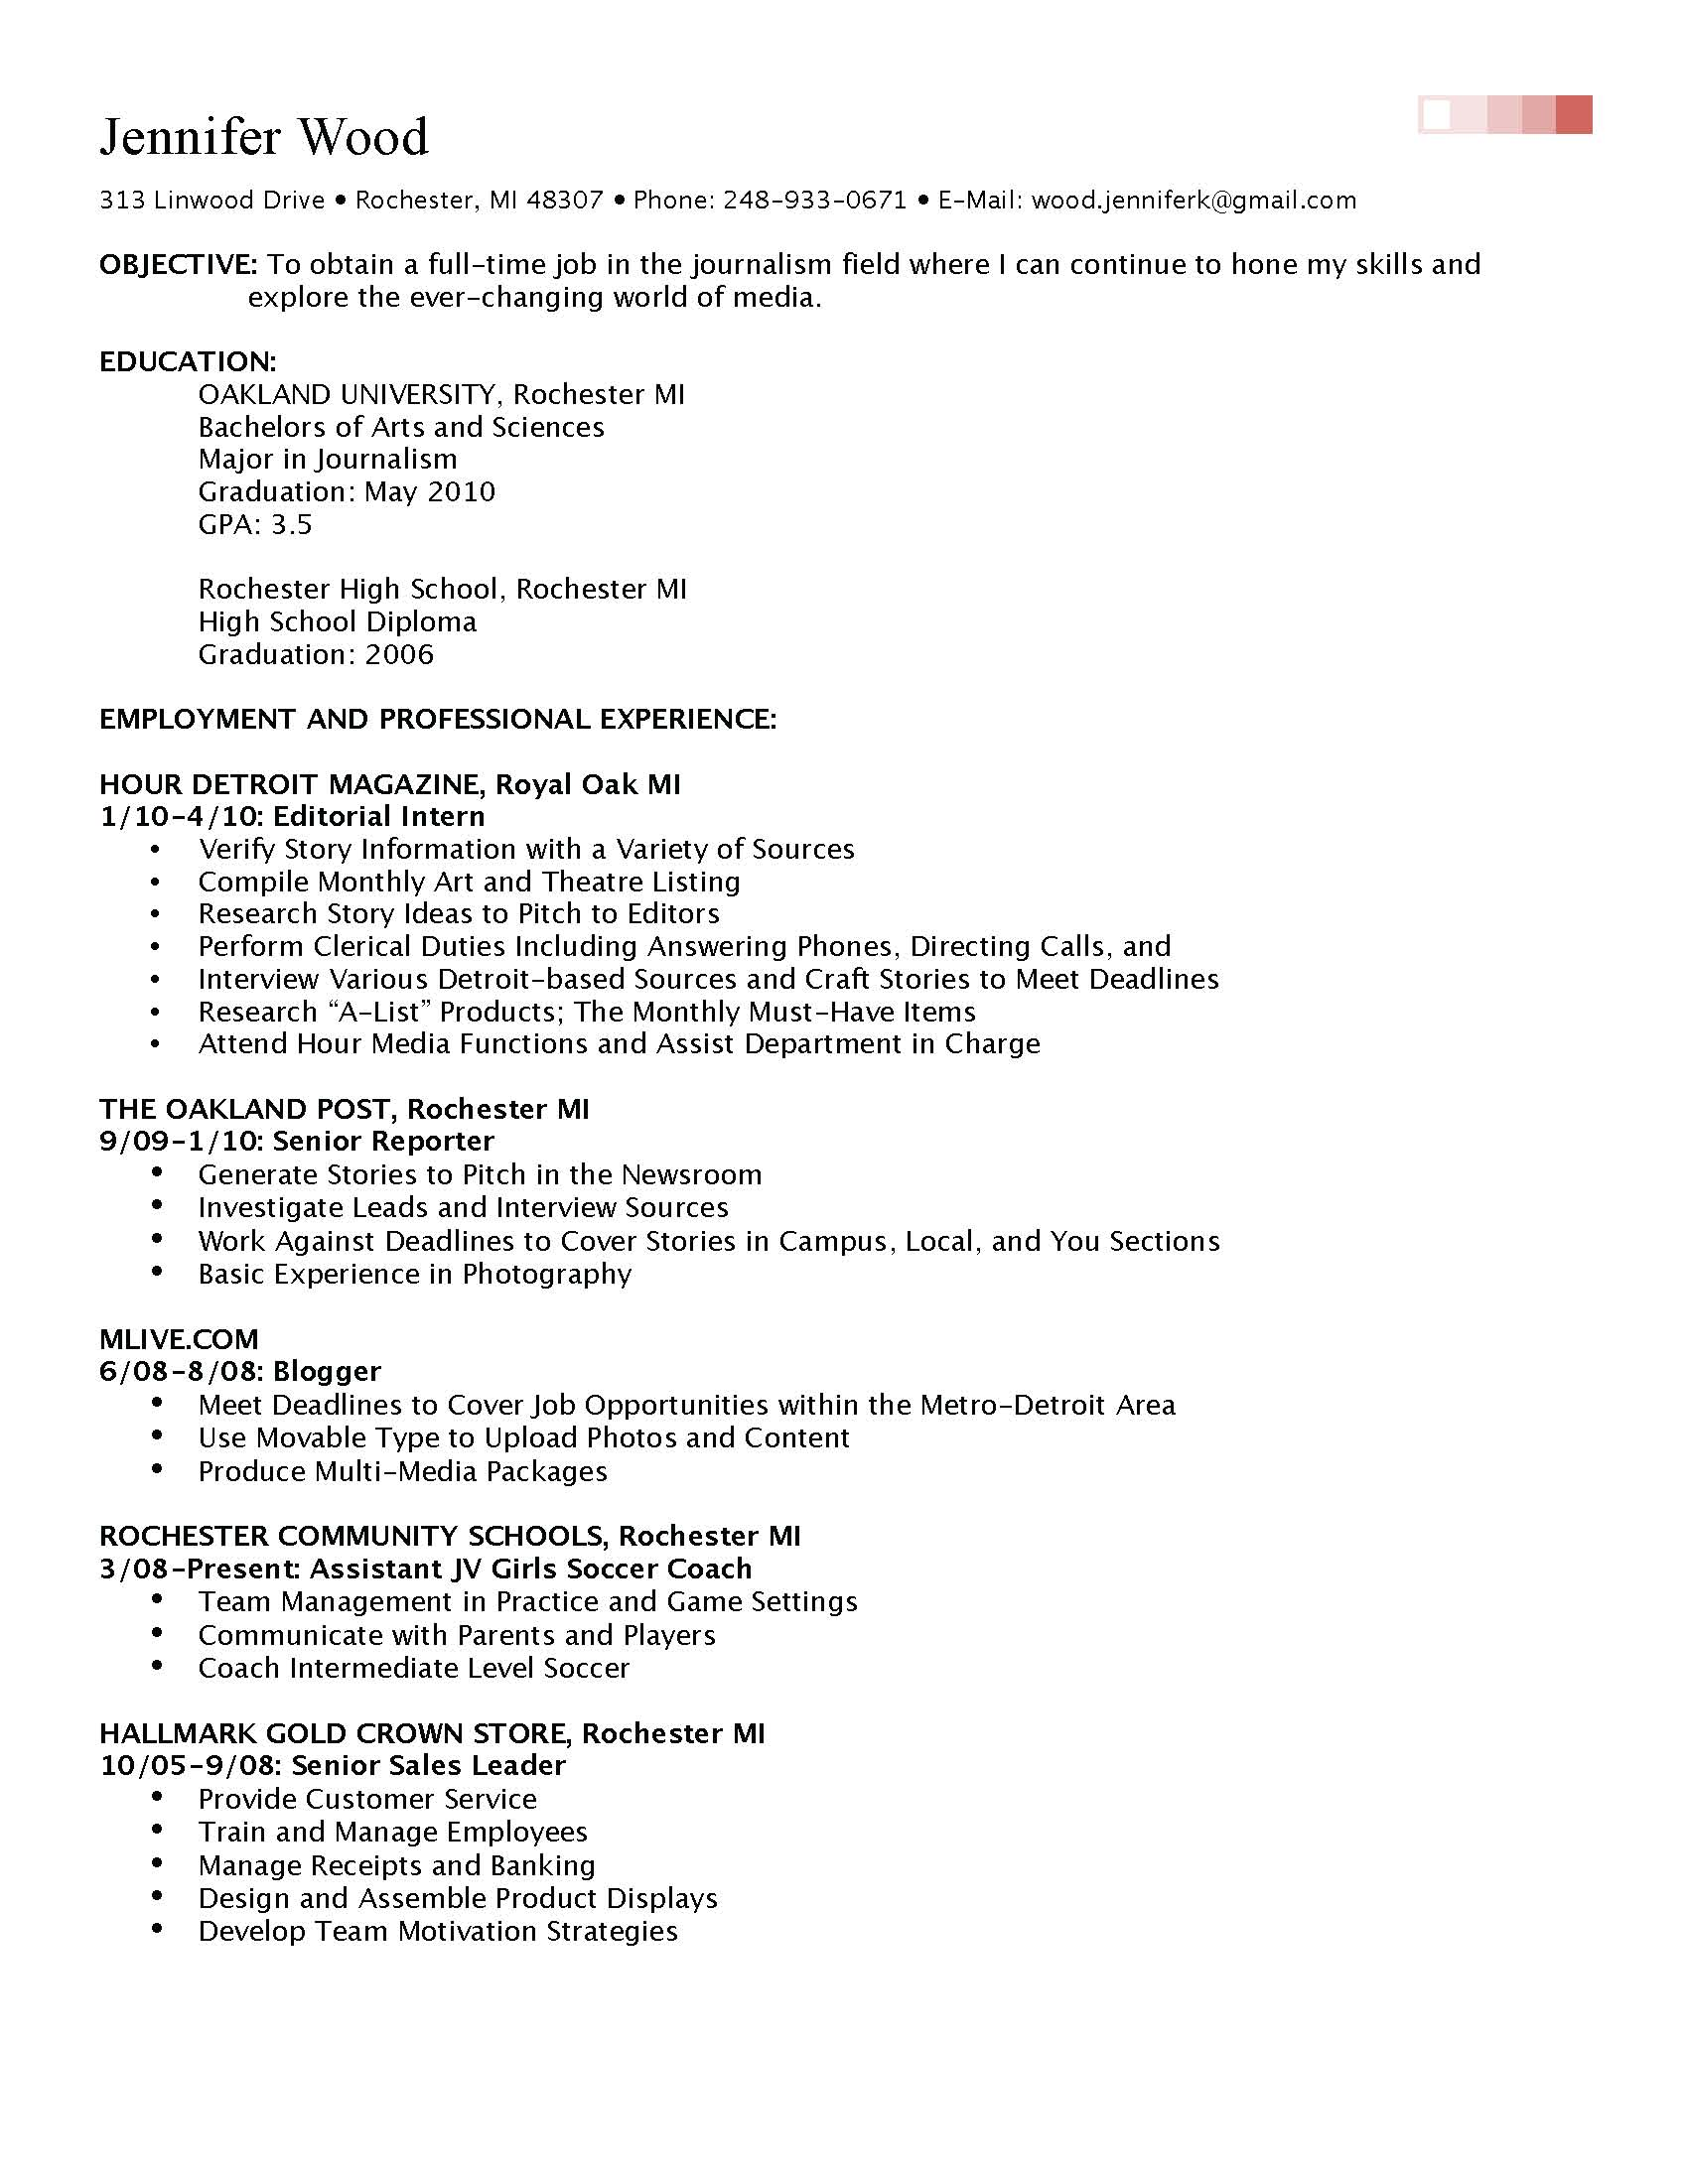 Resume Building resume dos and donts A Complete Resume Format Letter Template For A Complete Set Fill A Complete Resume Resume Building Tutorial Resume Builder Resume